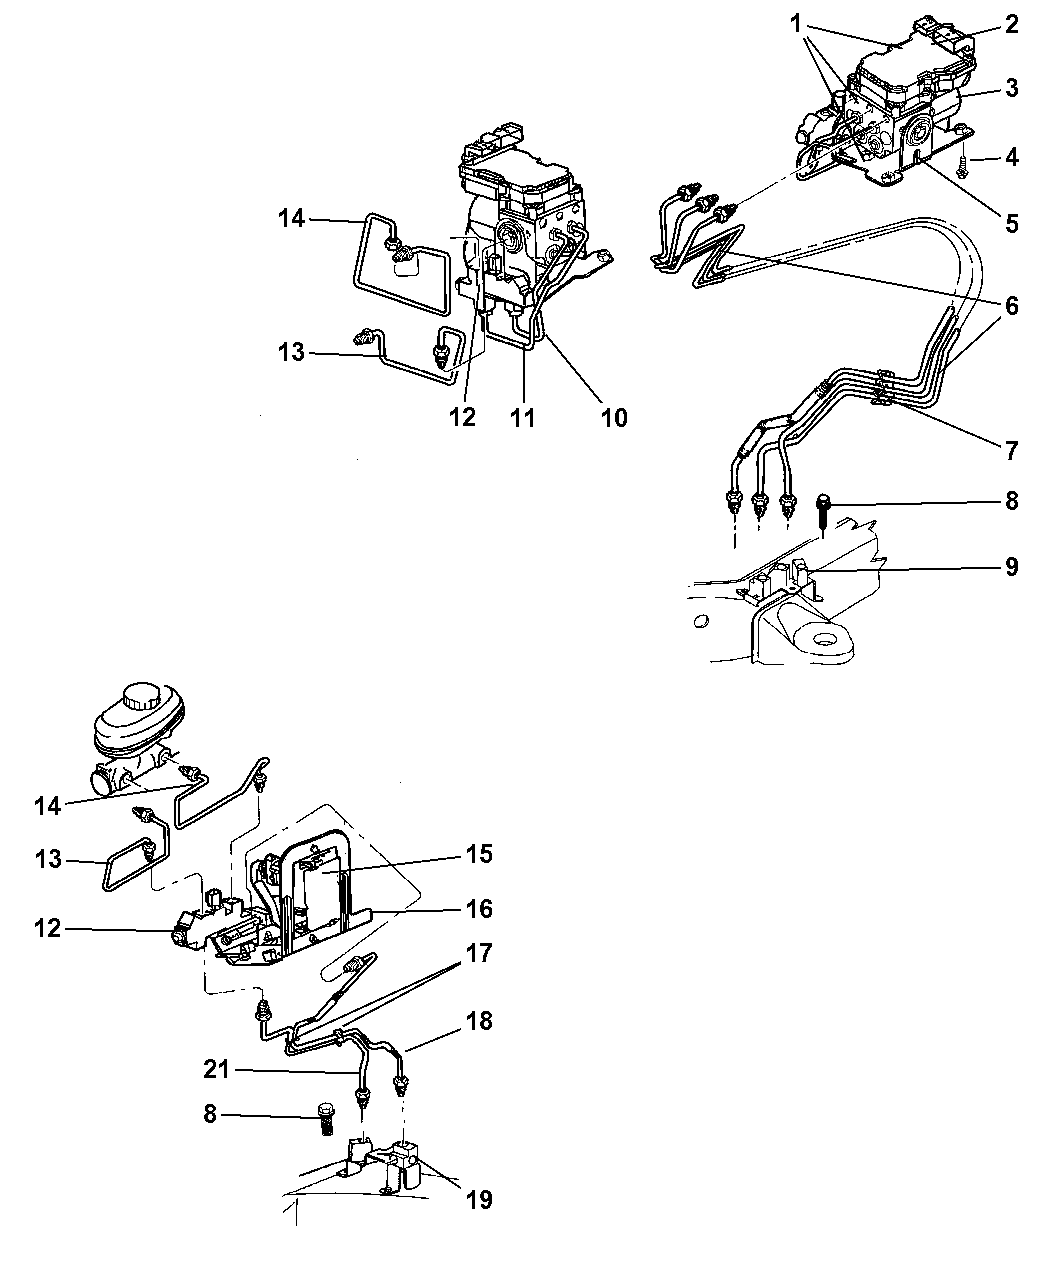 1999 Dodge Dakota Lines - Brake